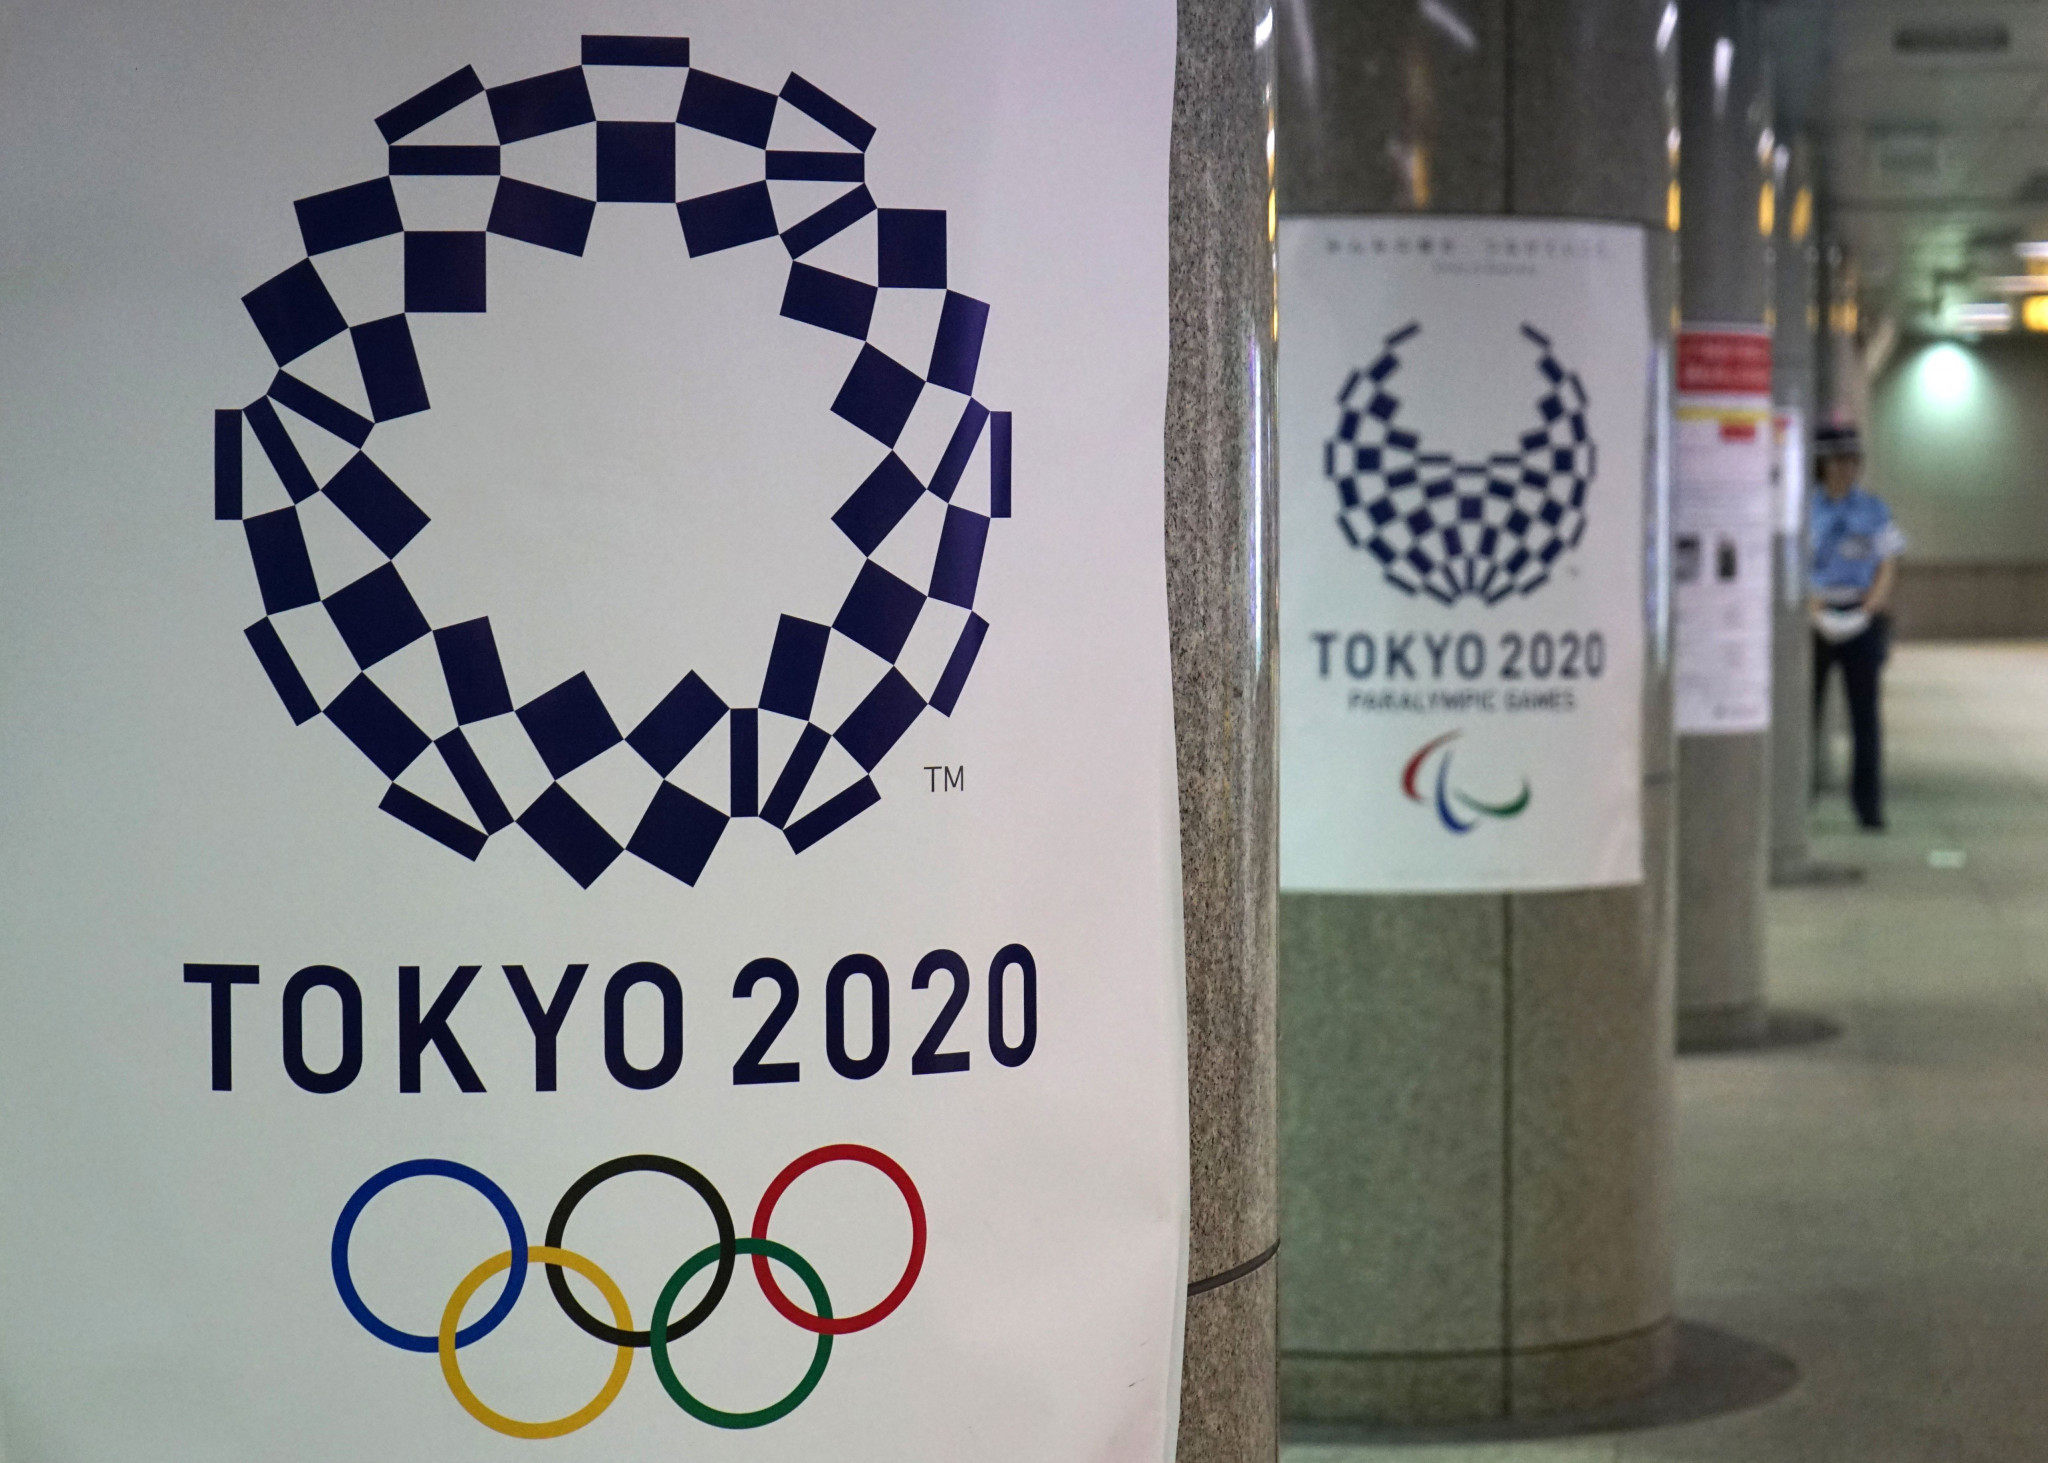 Japanese governing bodies fail to meet female members target in time for Tokyo 2020